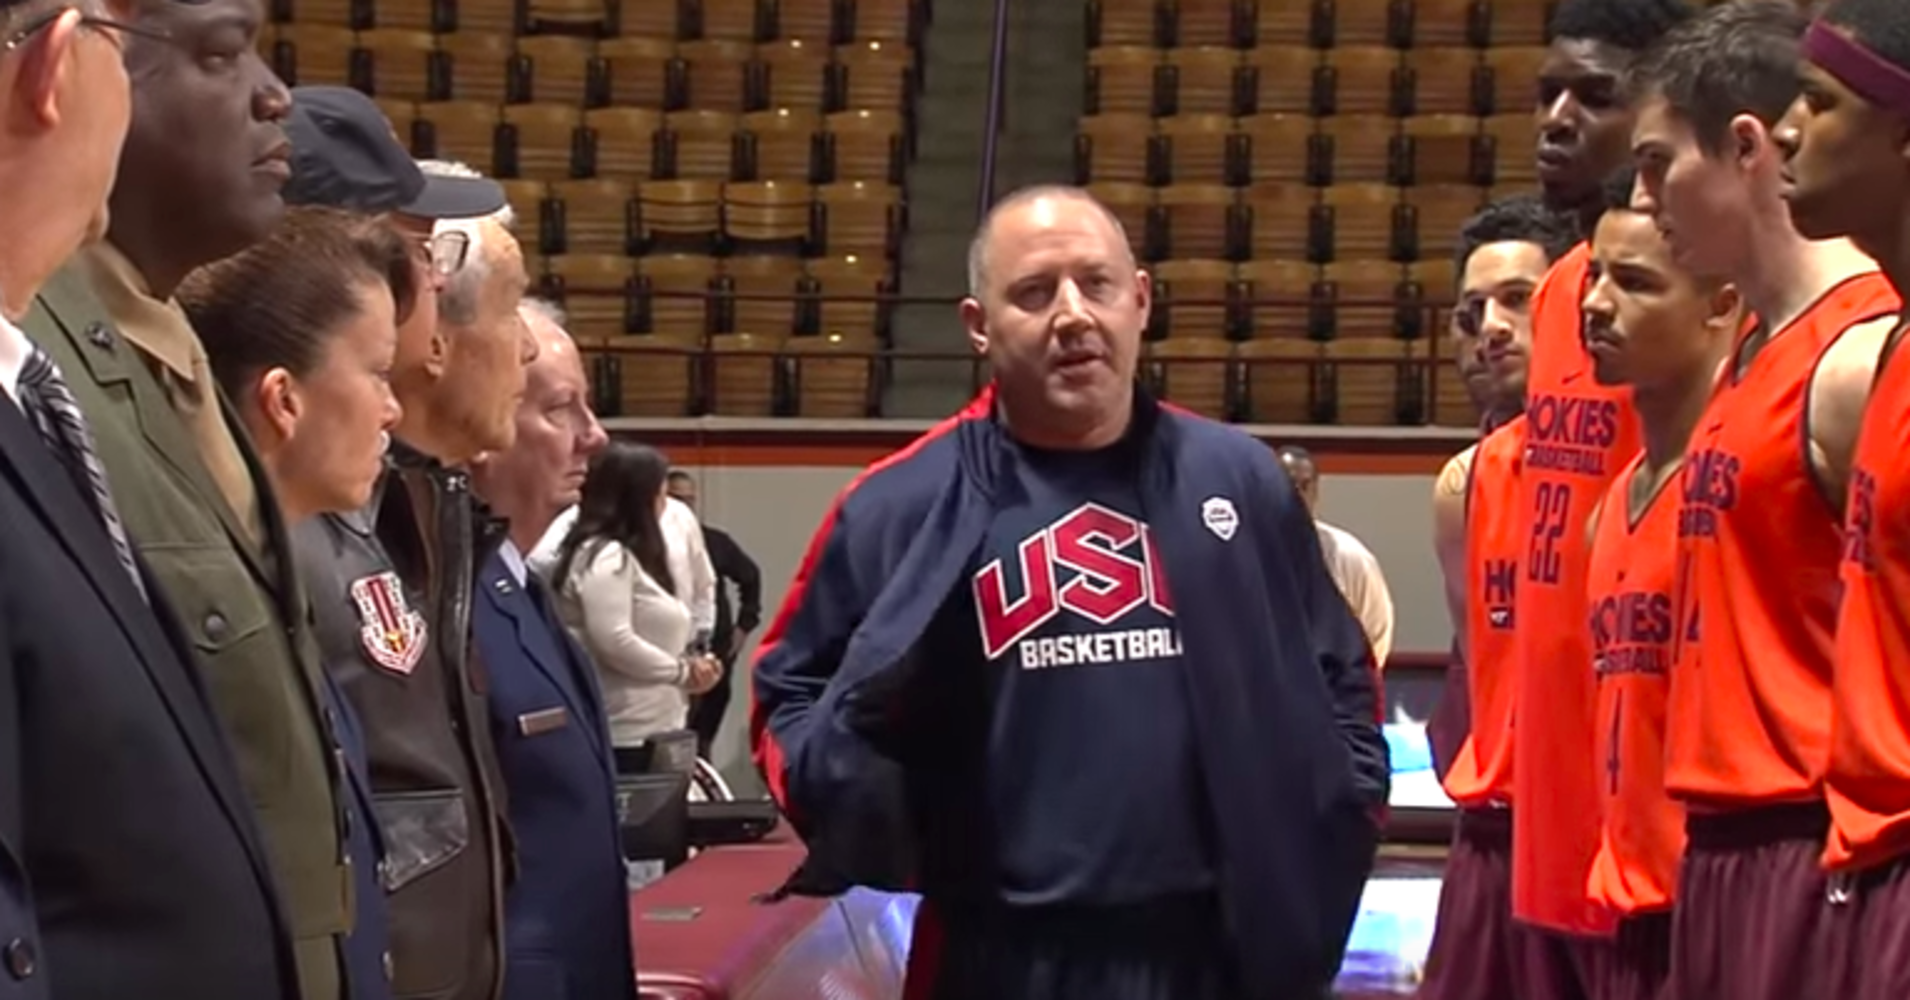 Coach Brings Veterans Onto Court, Teaches Players To Honor